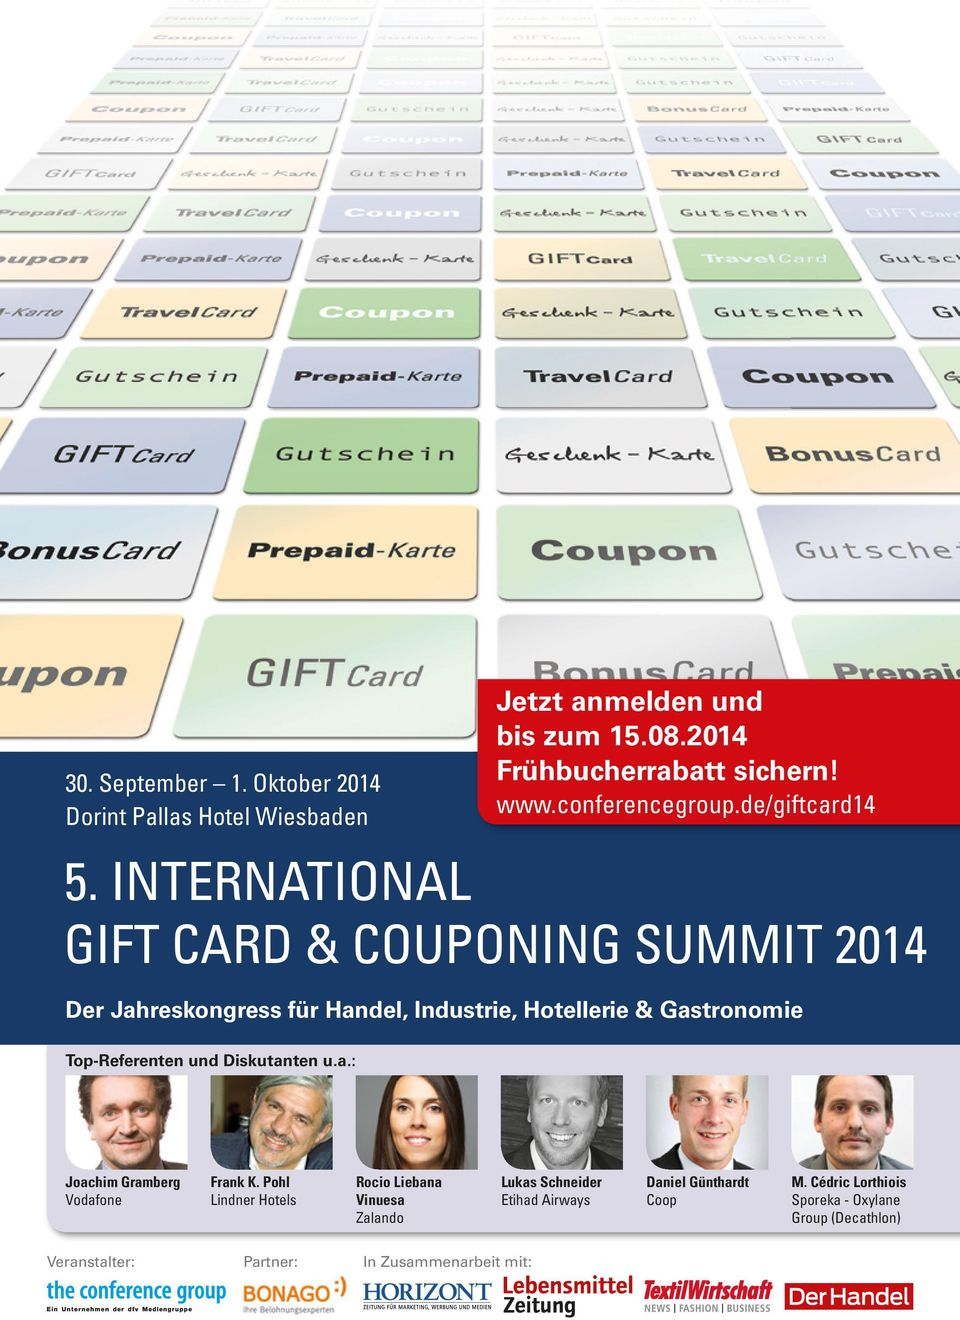 INTERNATIONAL GIFT CARD & COUPONING SUMMIT 2014 Der Jahreskongress für Handel, Industrie, Hotellerie & Gastronomie Top-Referenten und